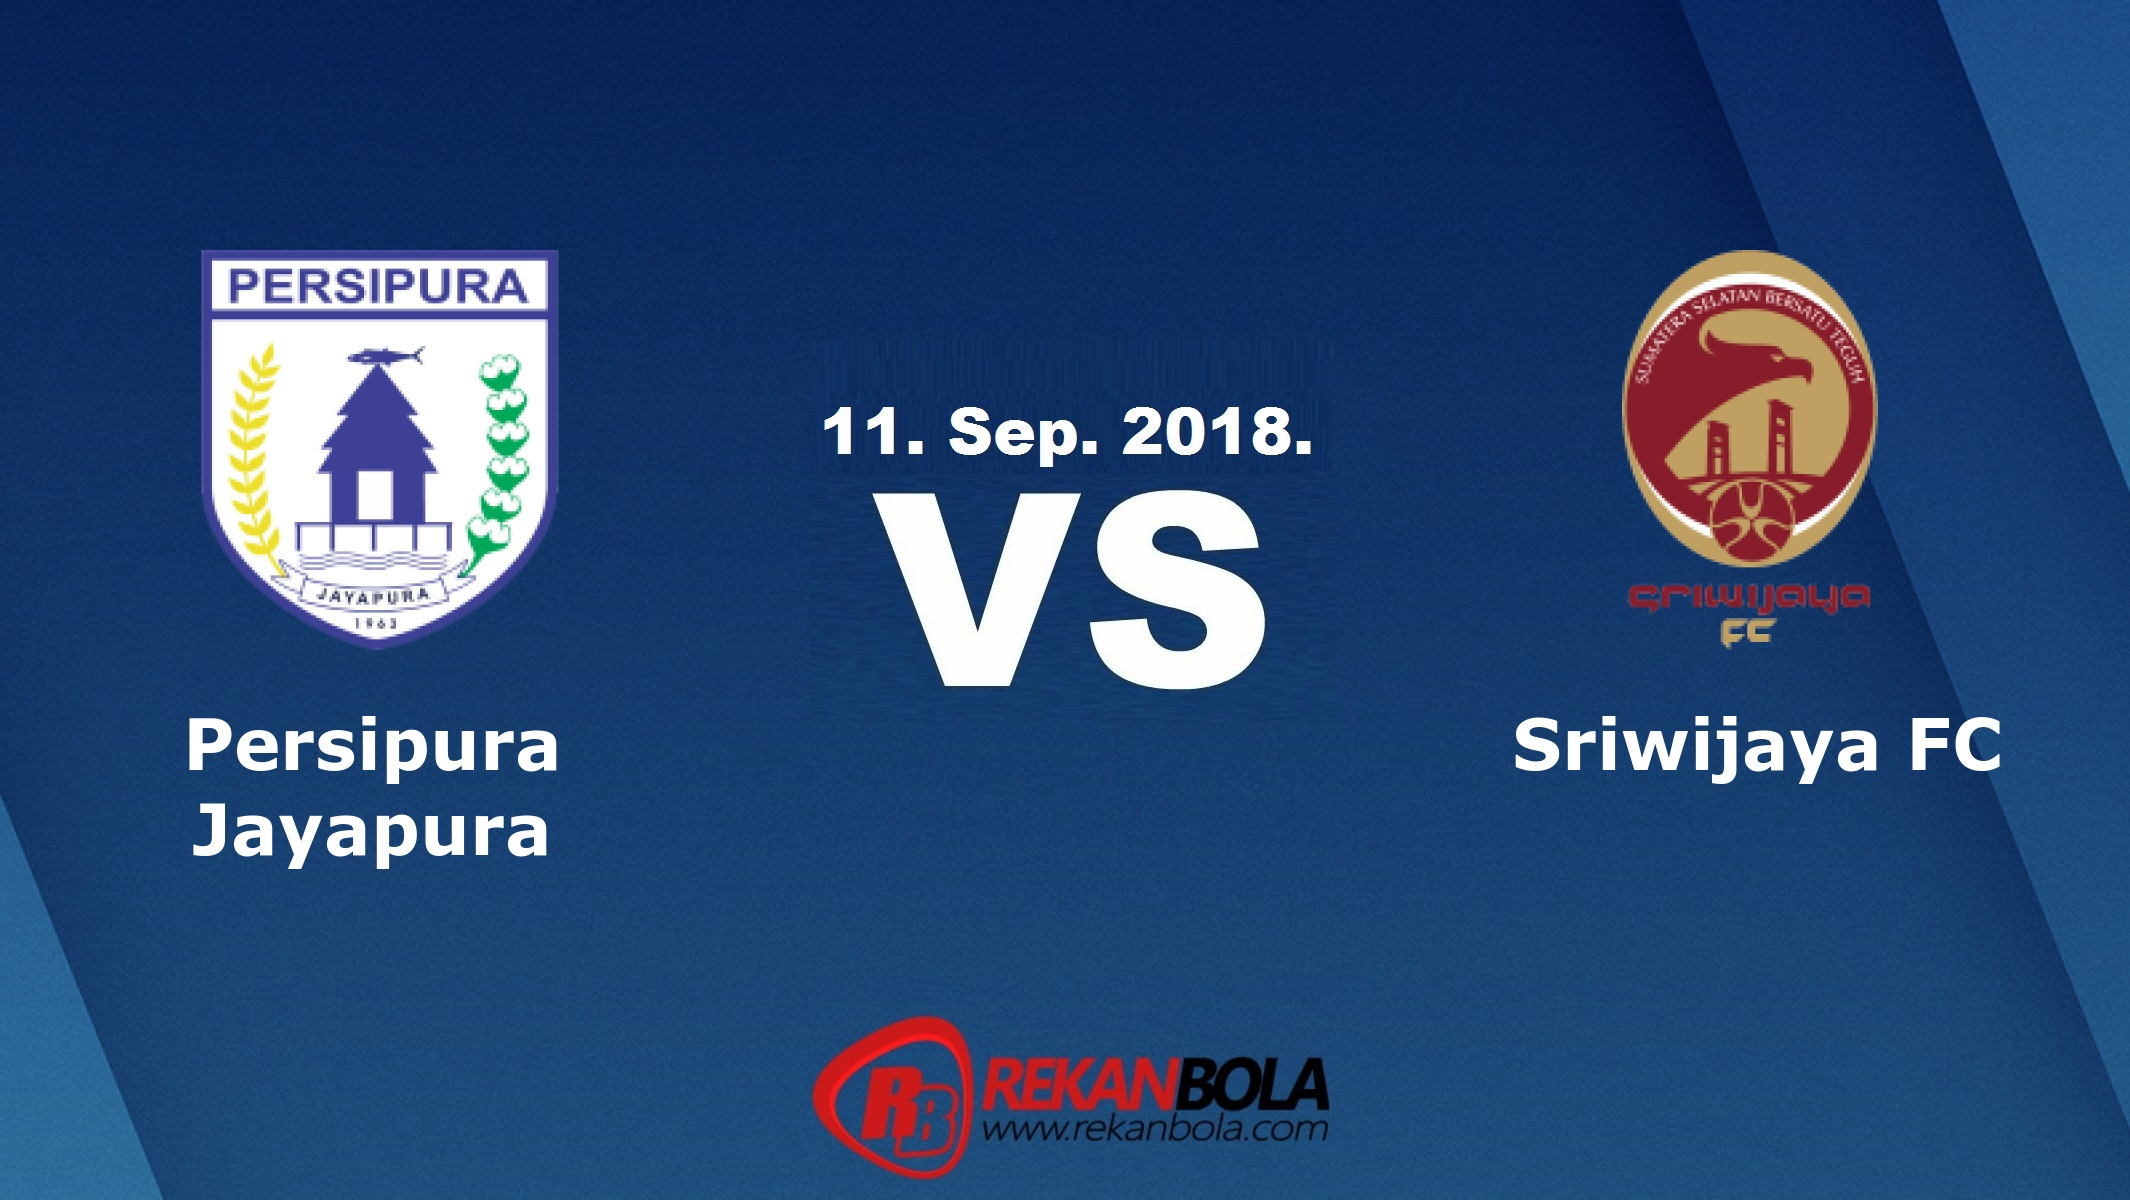 Nonton Siaran Live Streaming Persipura Vs Sriwijaya 11 September 2018